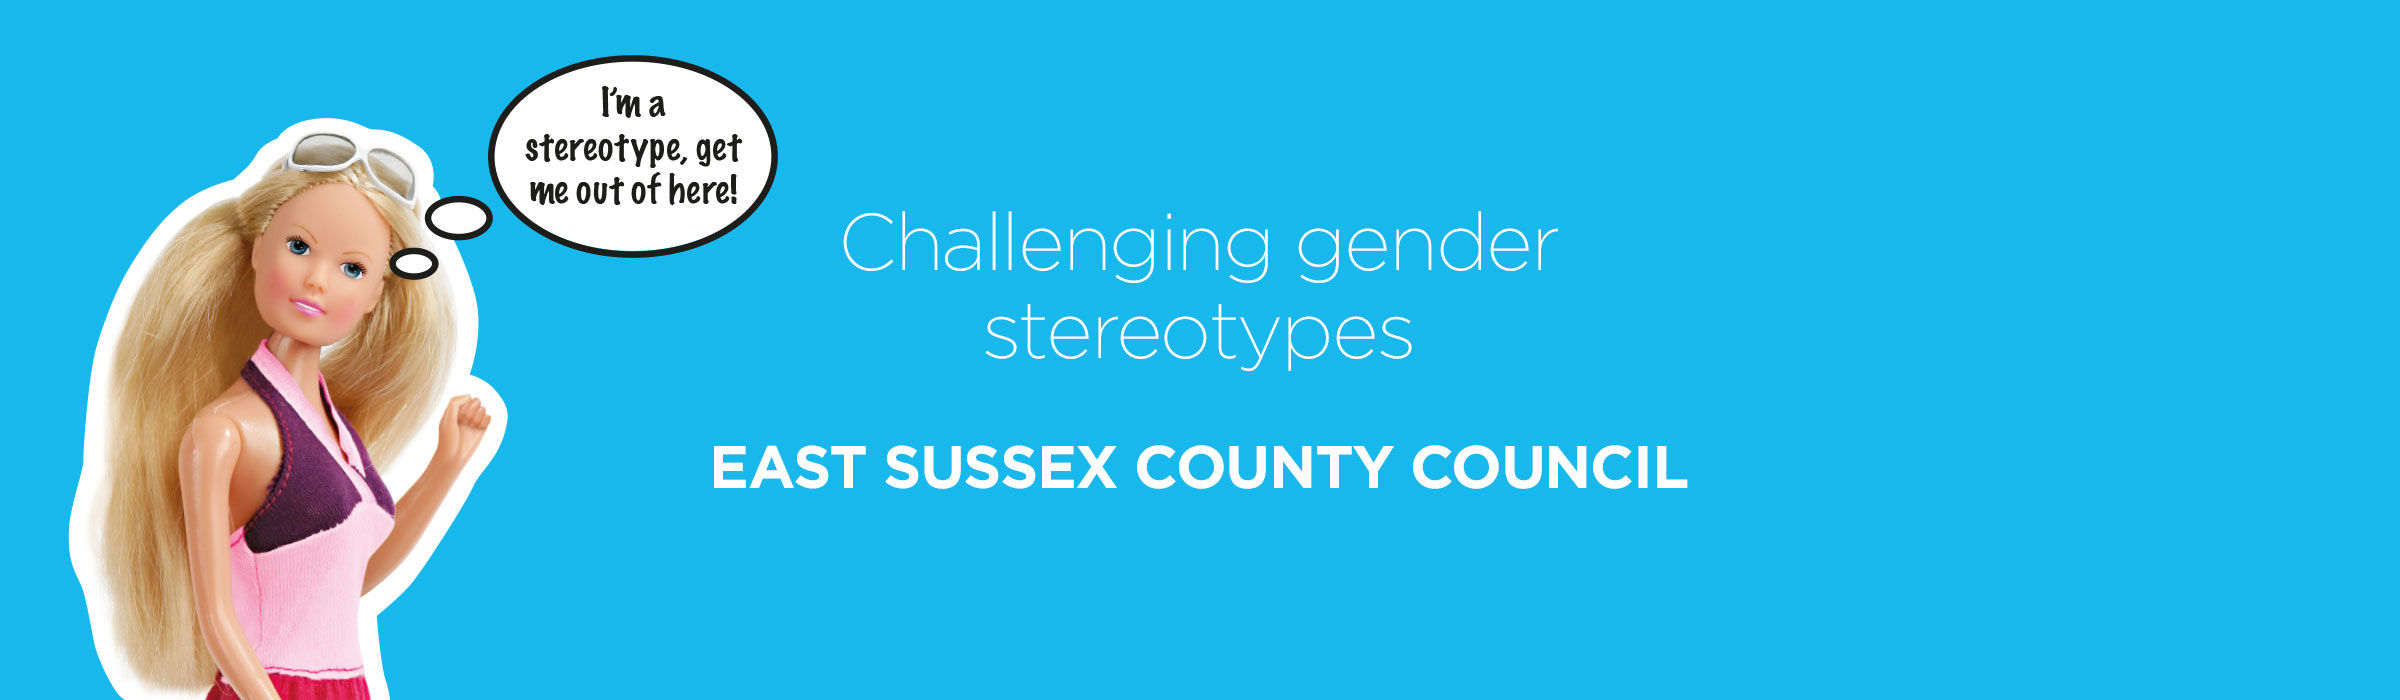 East Sussex County Council – Challenging gender stereotypes